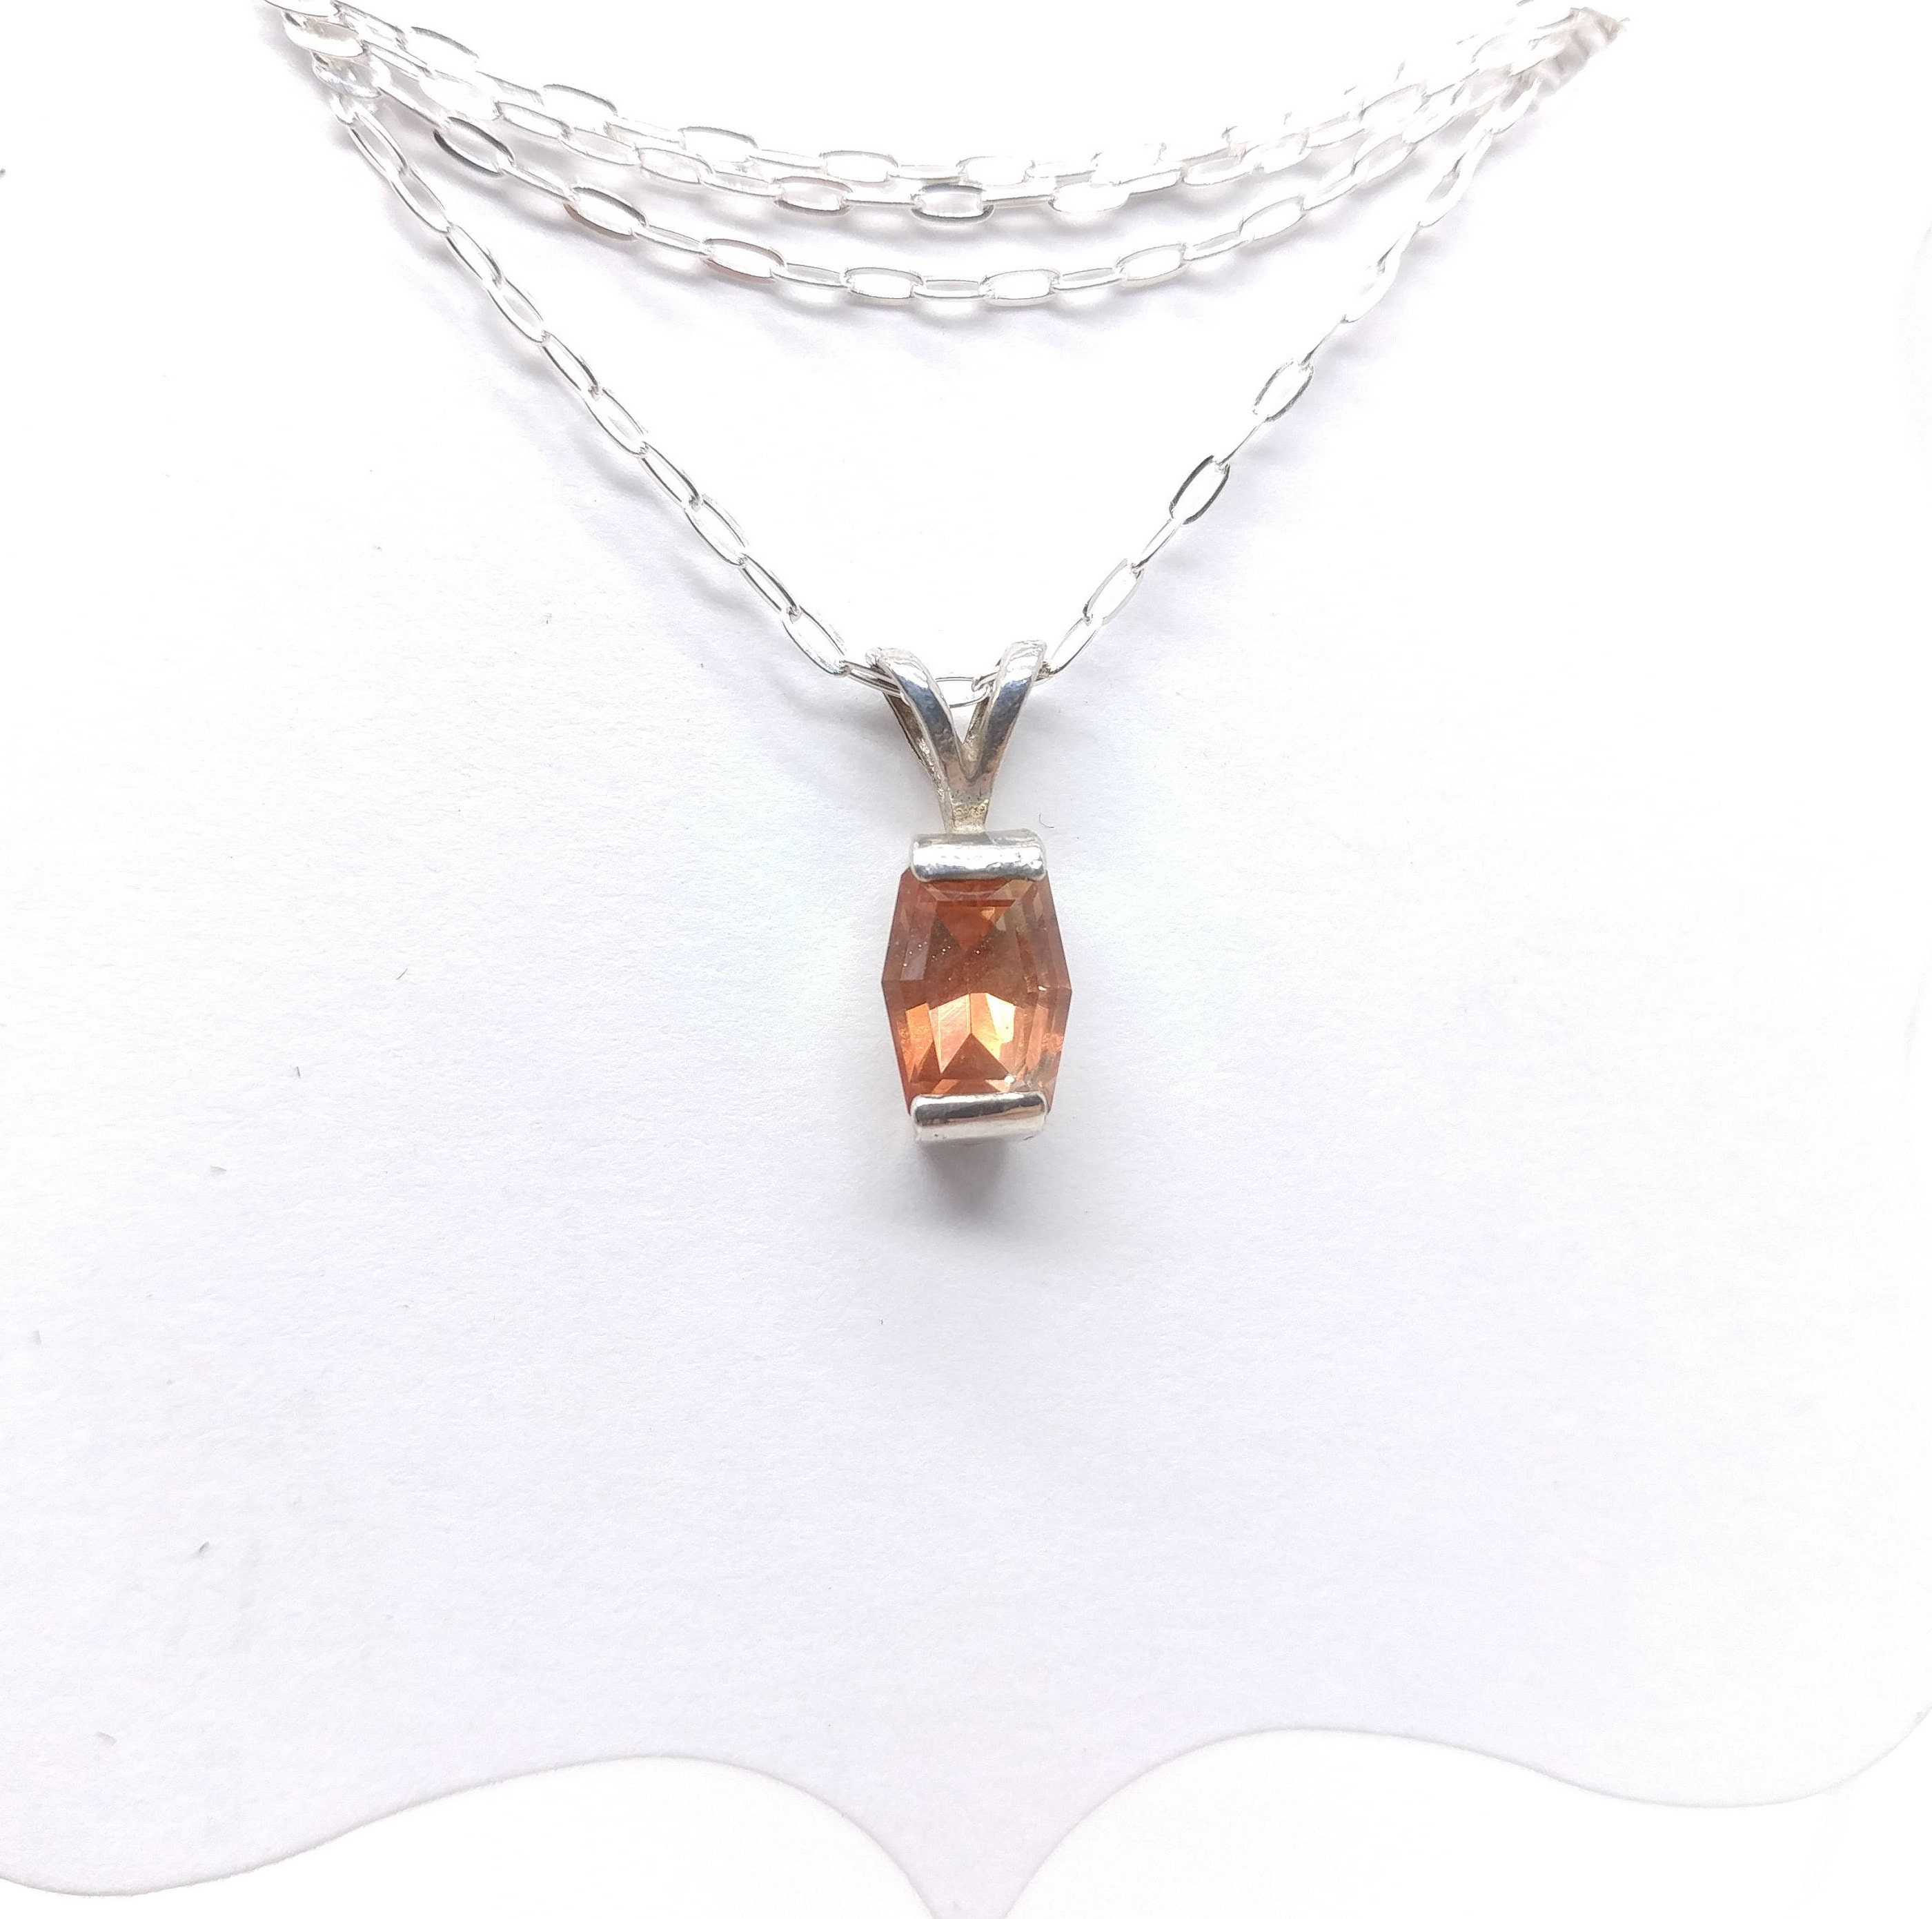 traumspuren sunstone index pendant of slab necklace galery women images